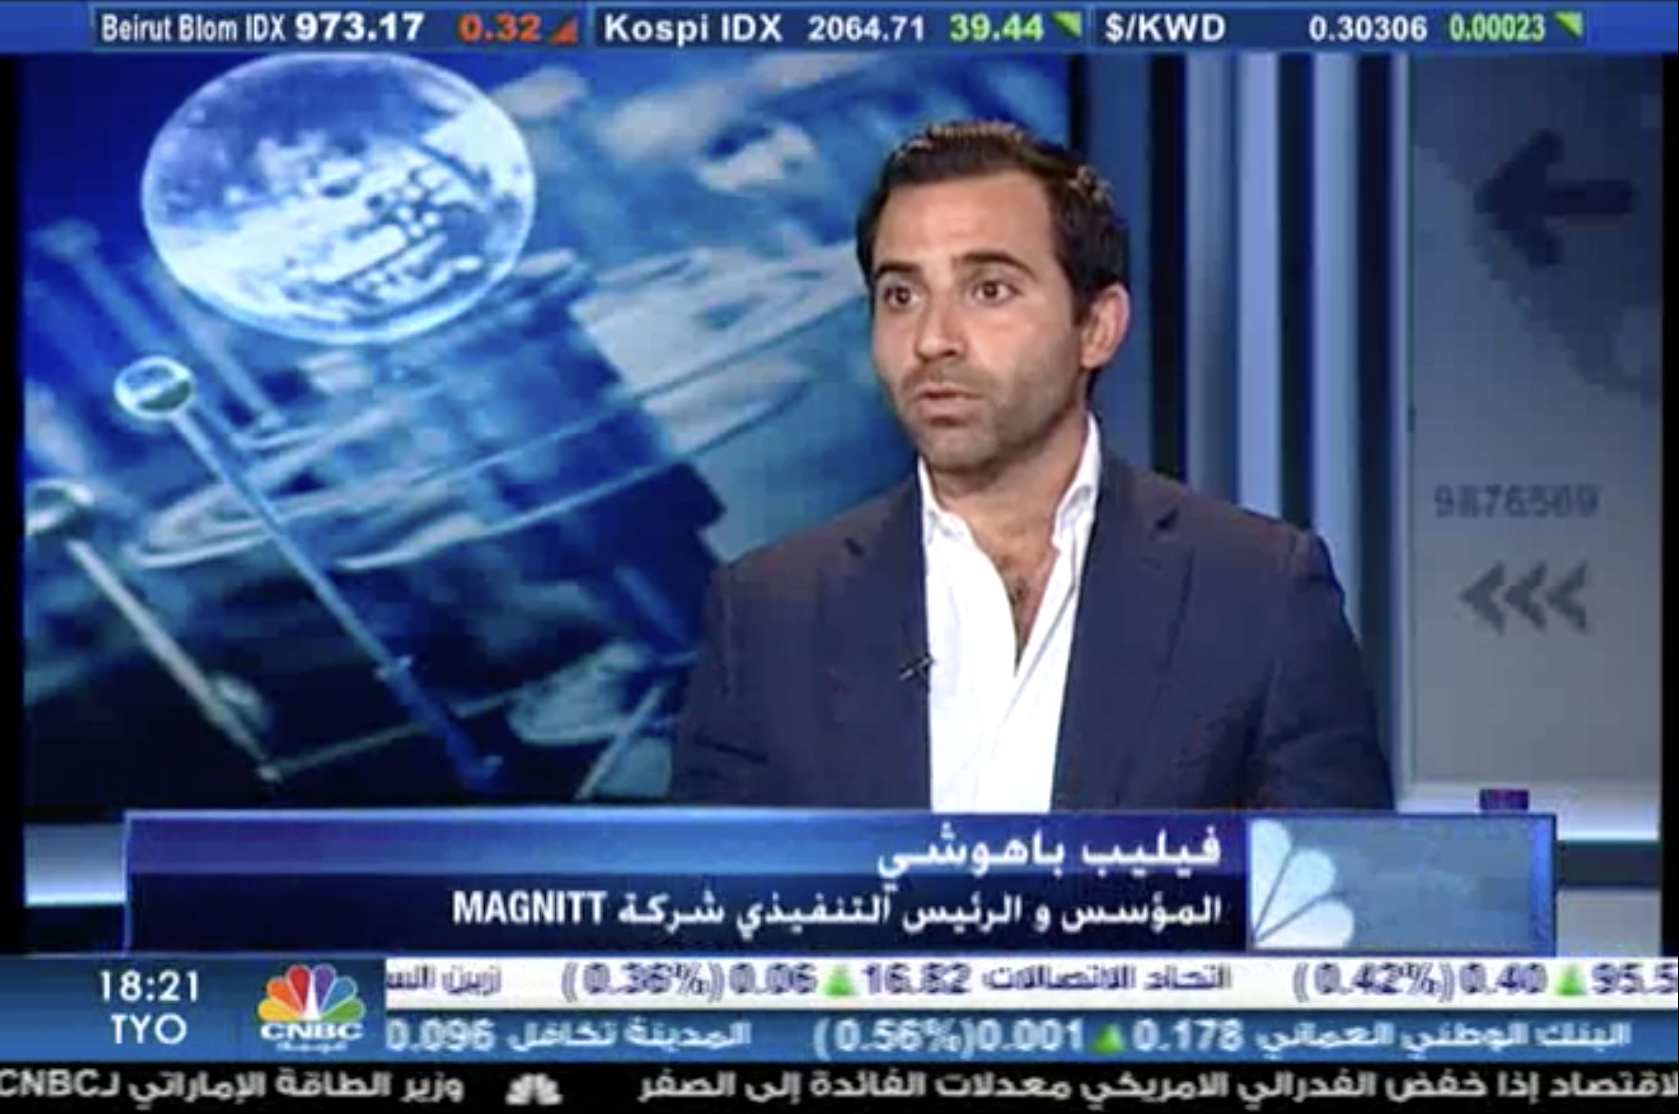 MAGNiTT 2018 MENA Venture Investment Report on CNBC Arabia